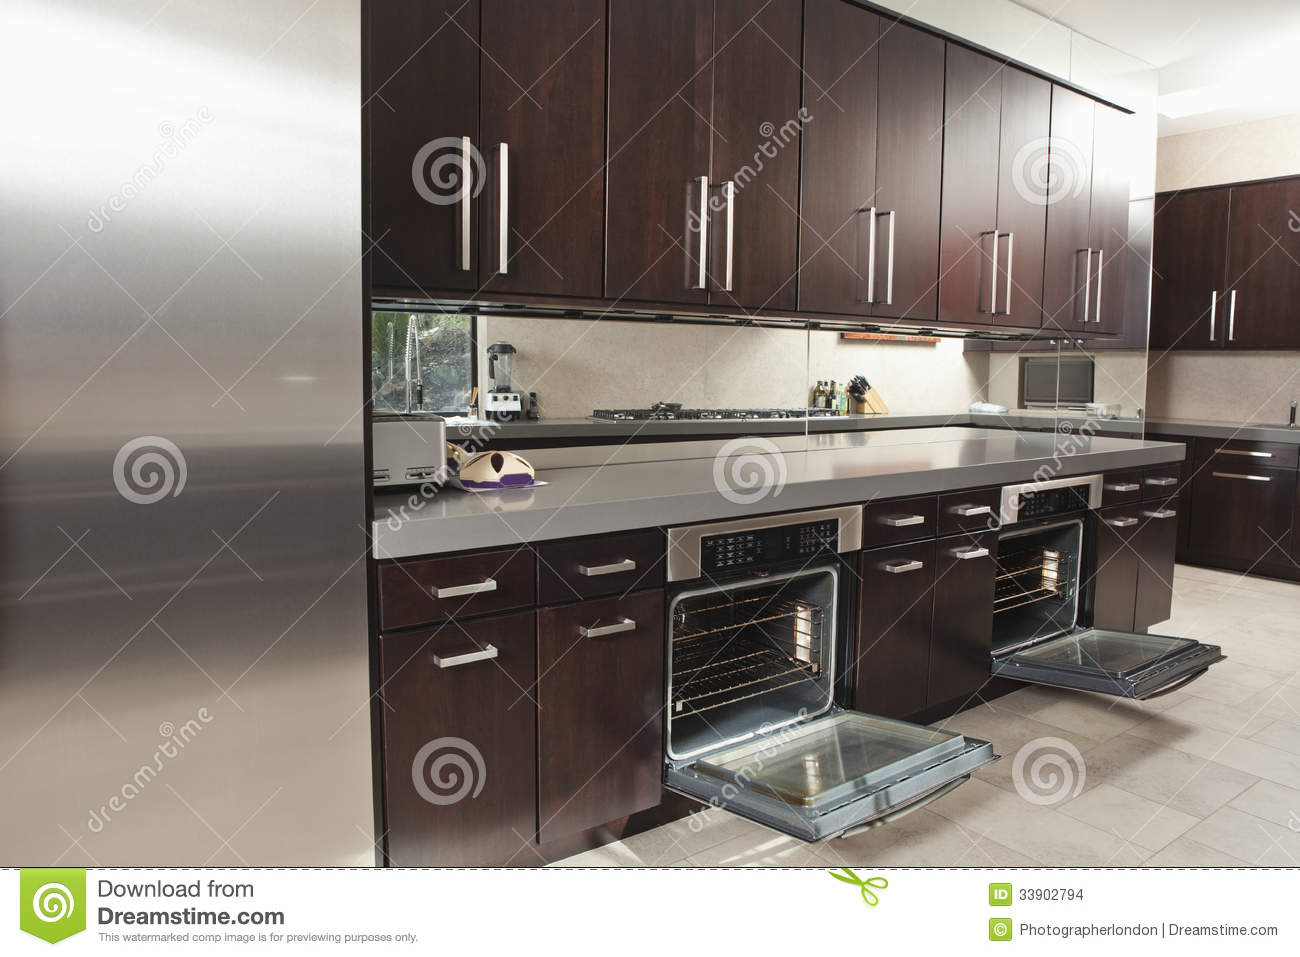 Commercial Countertop Dishwasher Commercial Kitchen With Open Oven And Cabinets Stock Photo